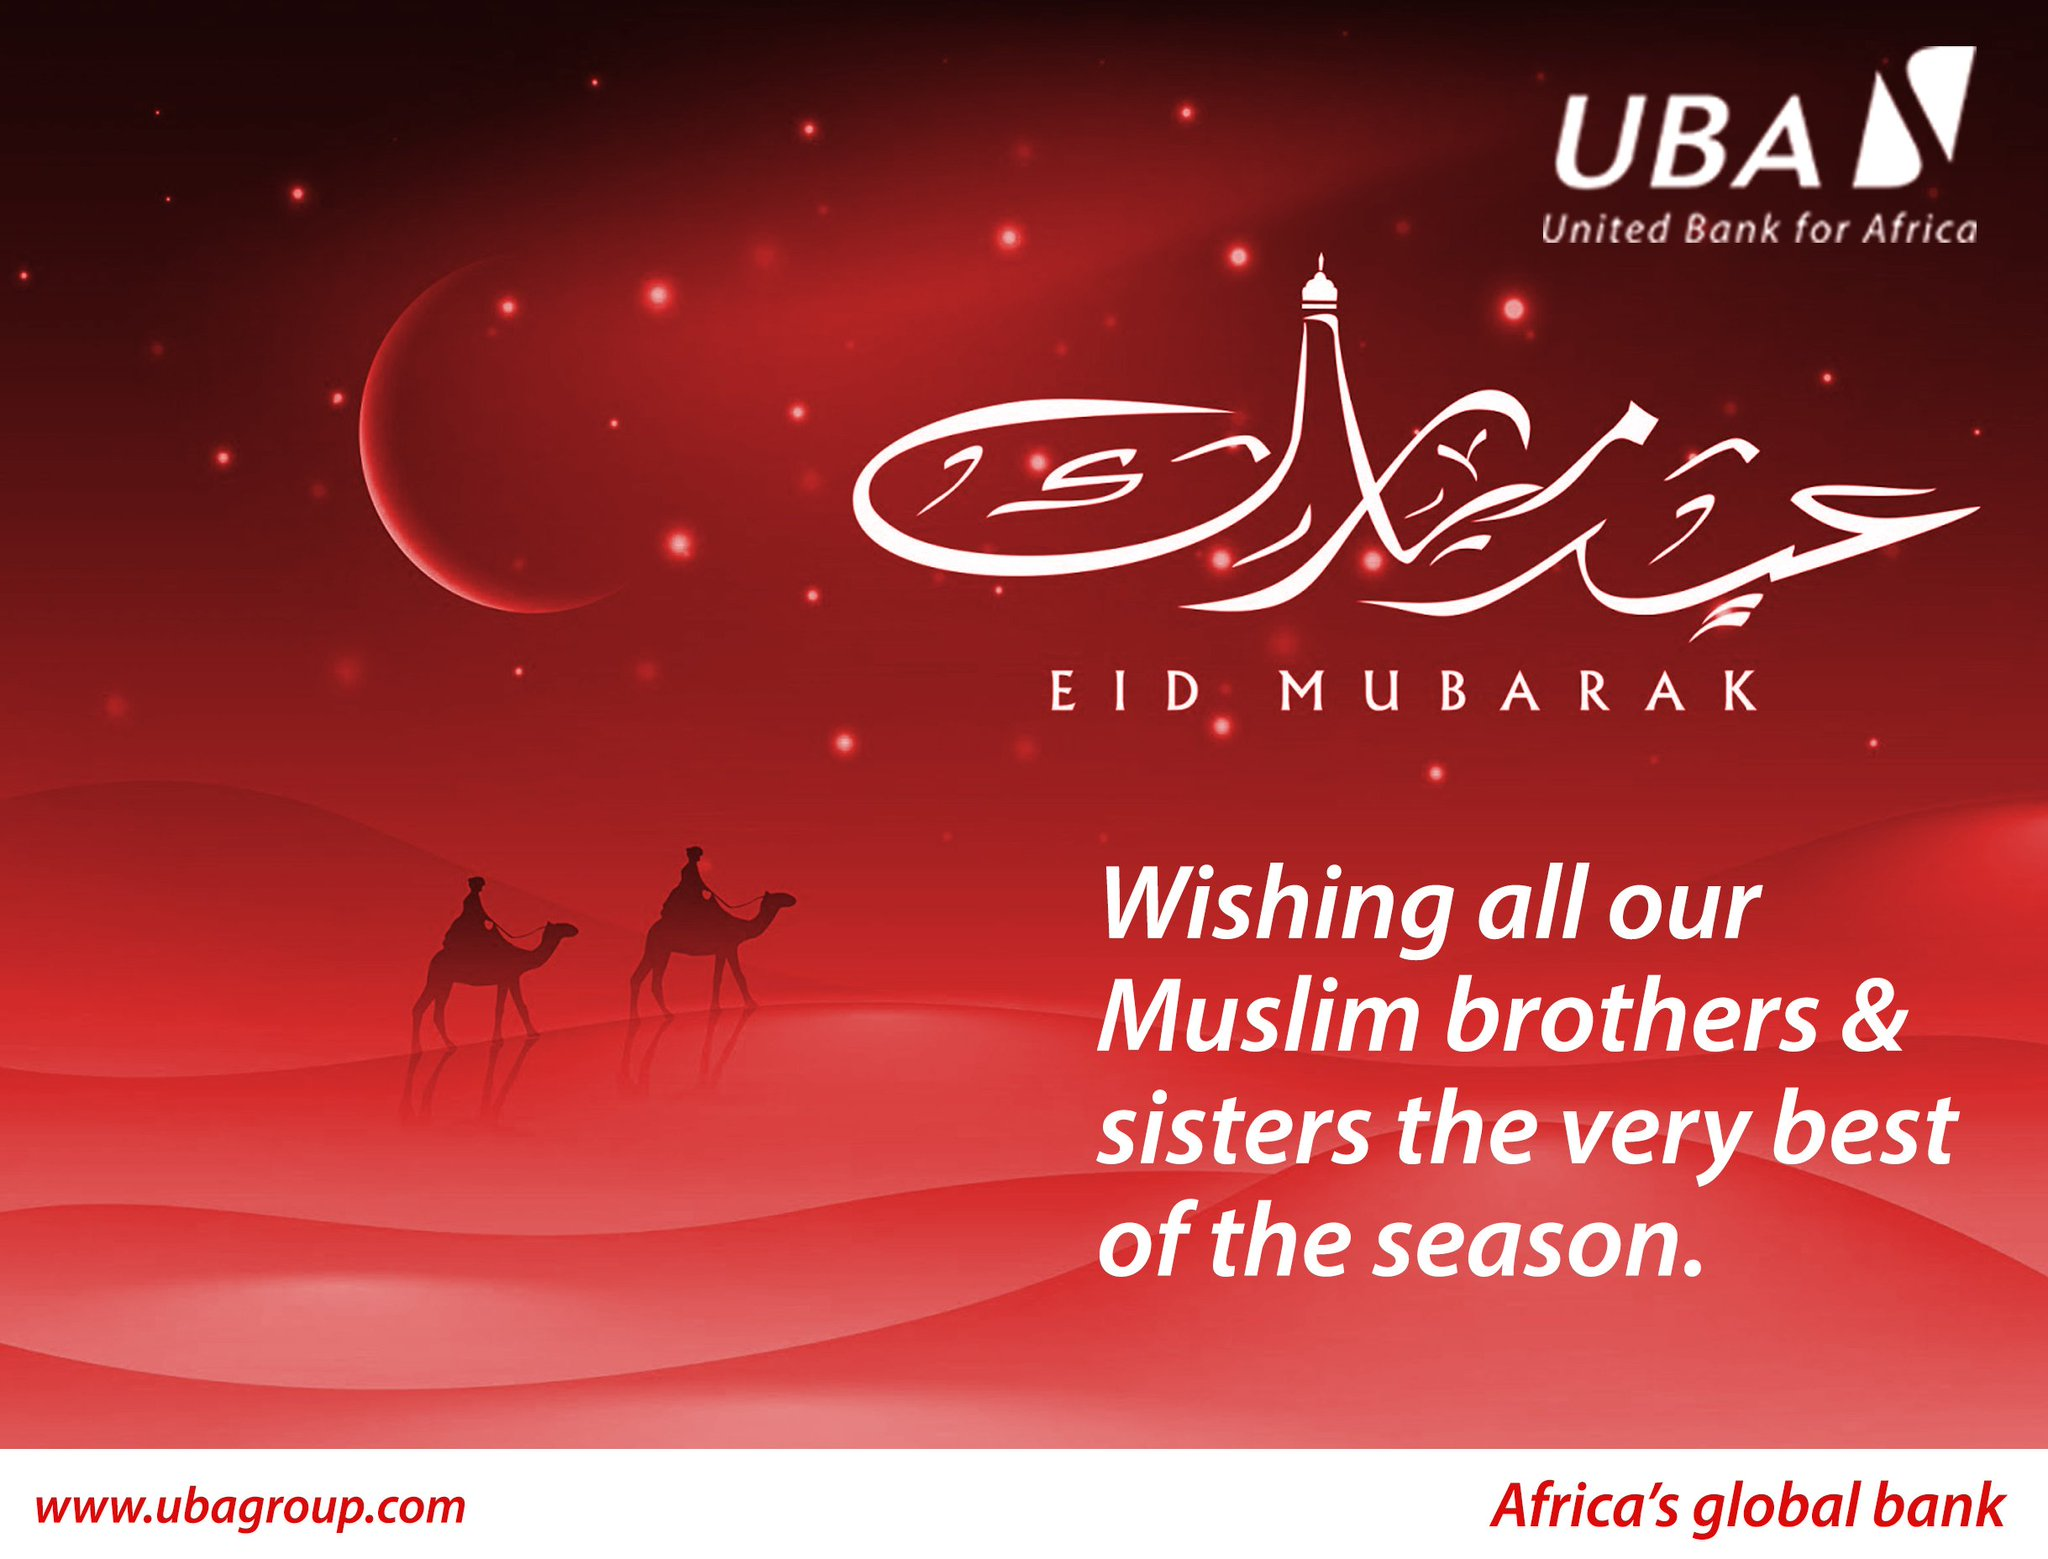 Uba Group On Twitter We Wish You The Very Best Of The Season